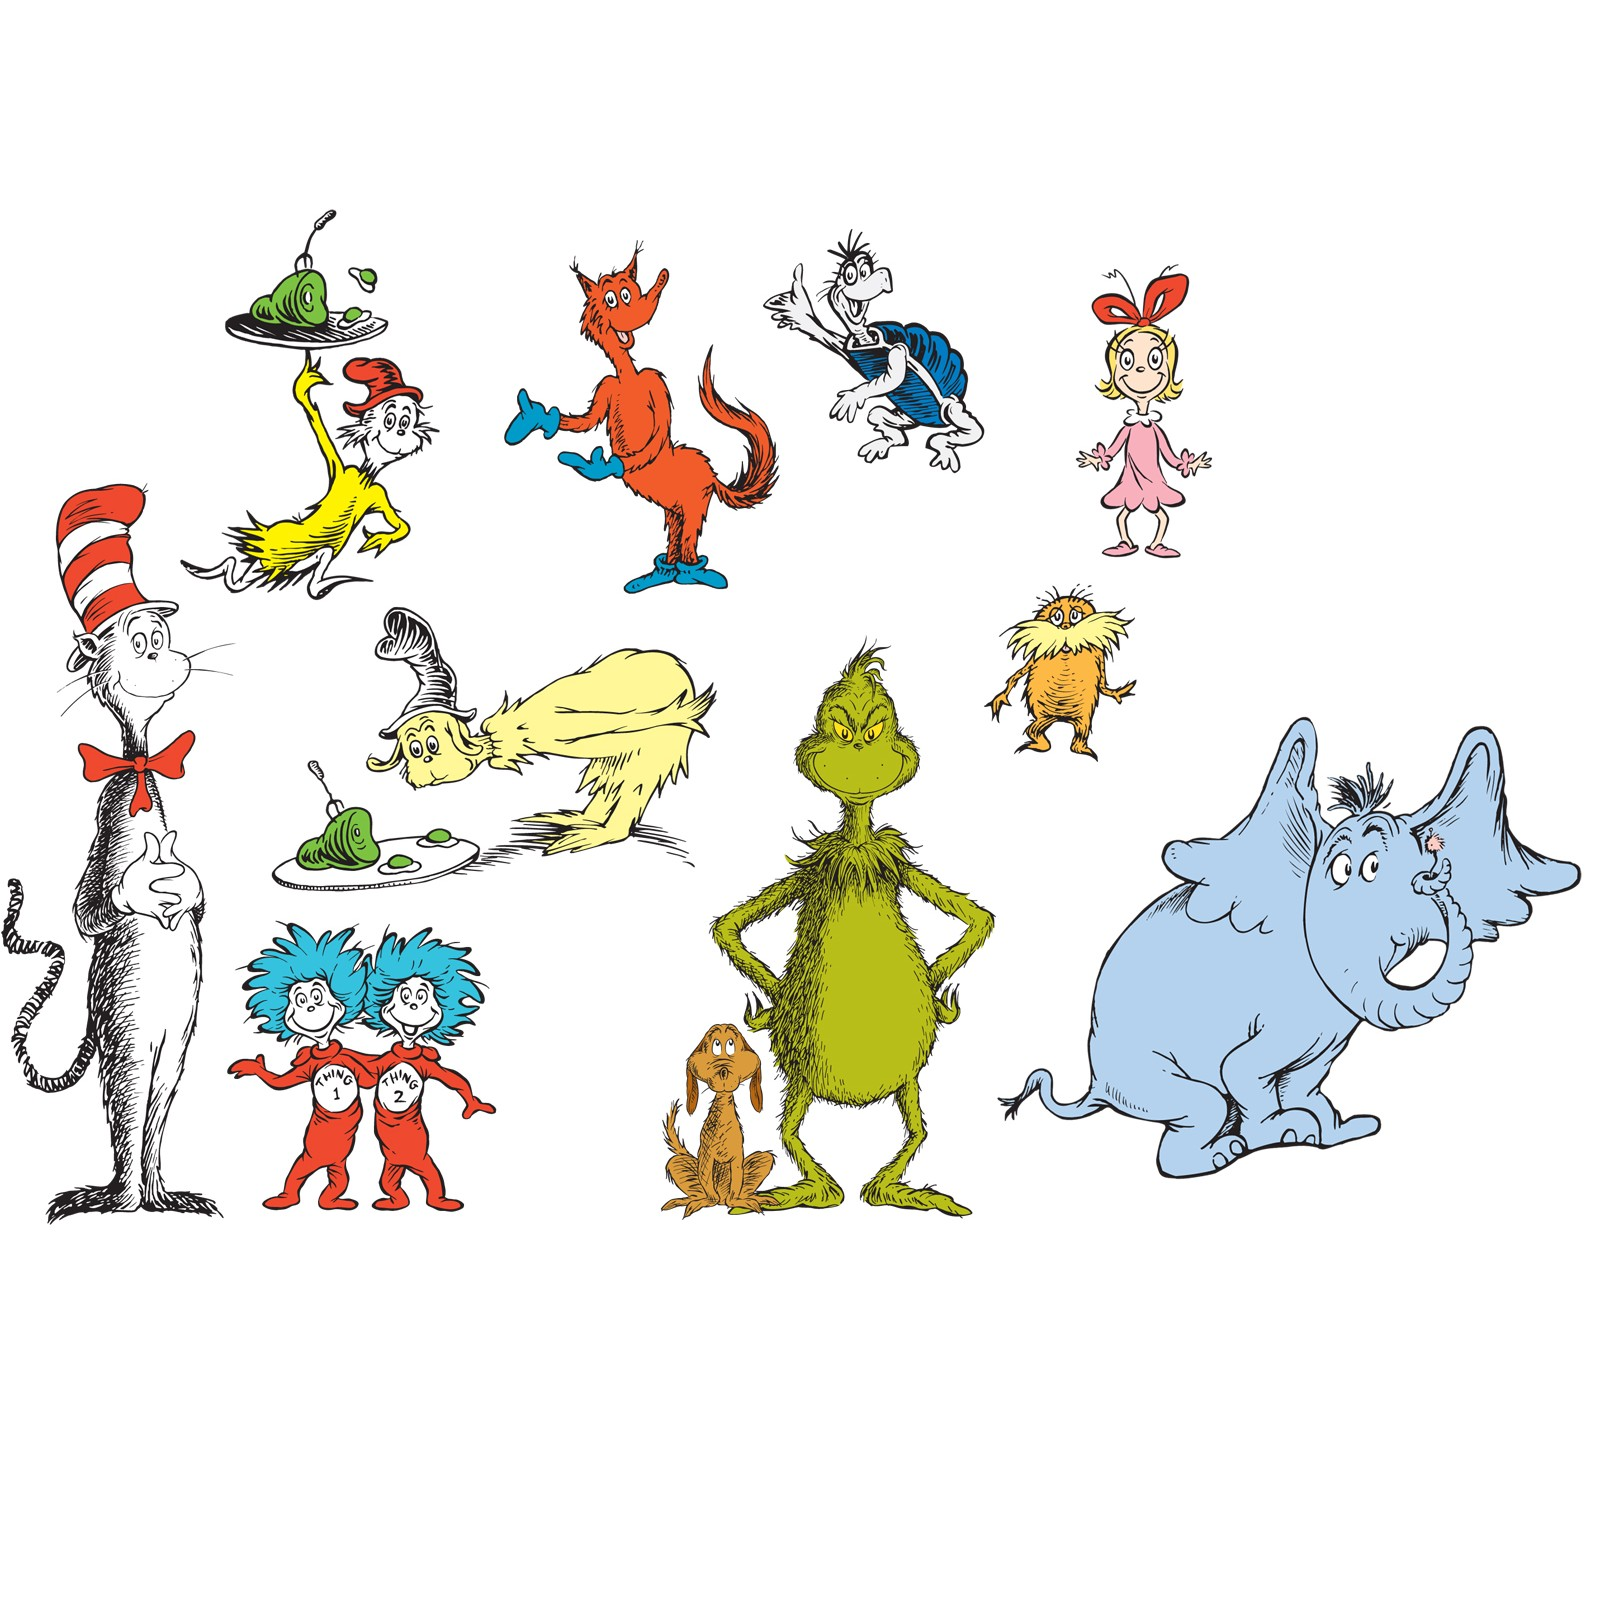 Free Dr. Seuss Characters, Download Free Clip Art, Free Clip Art on.